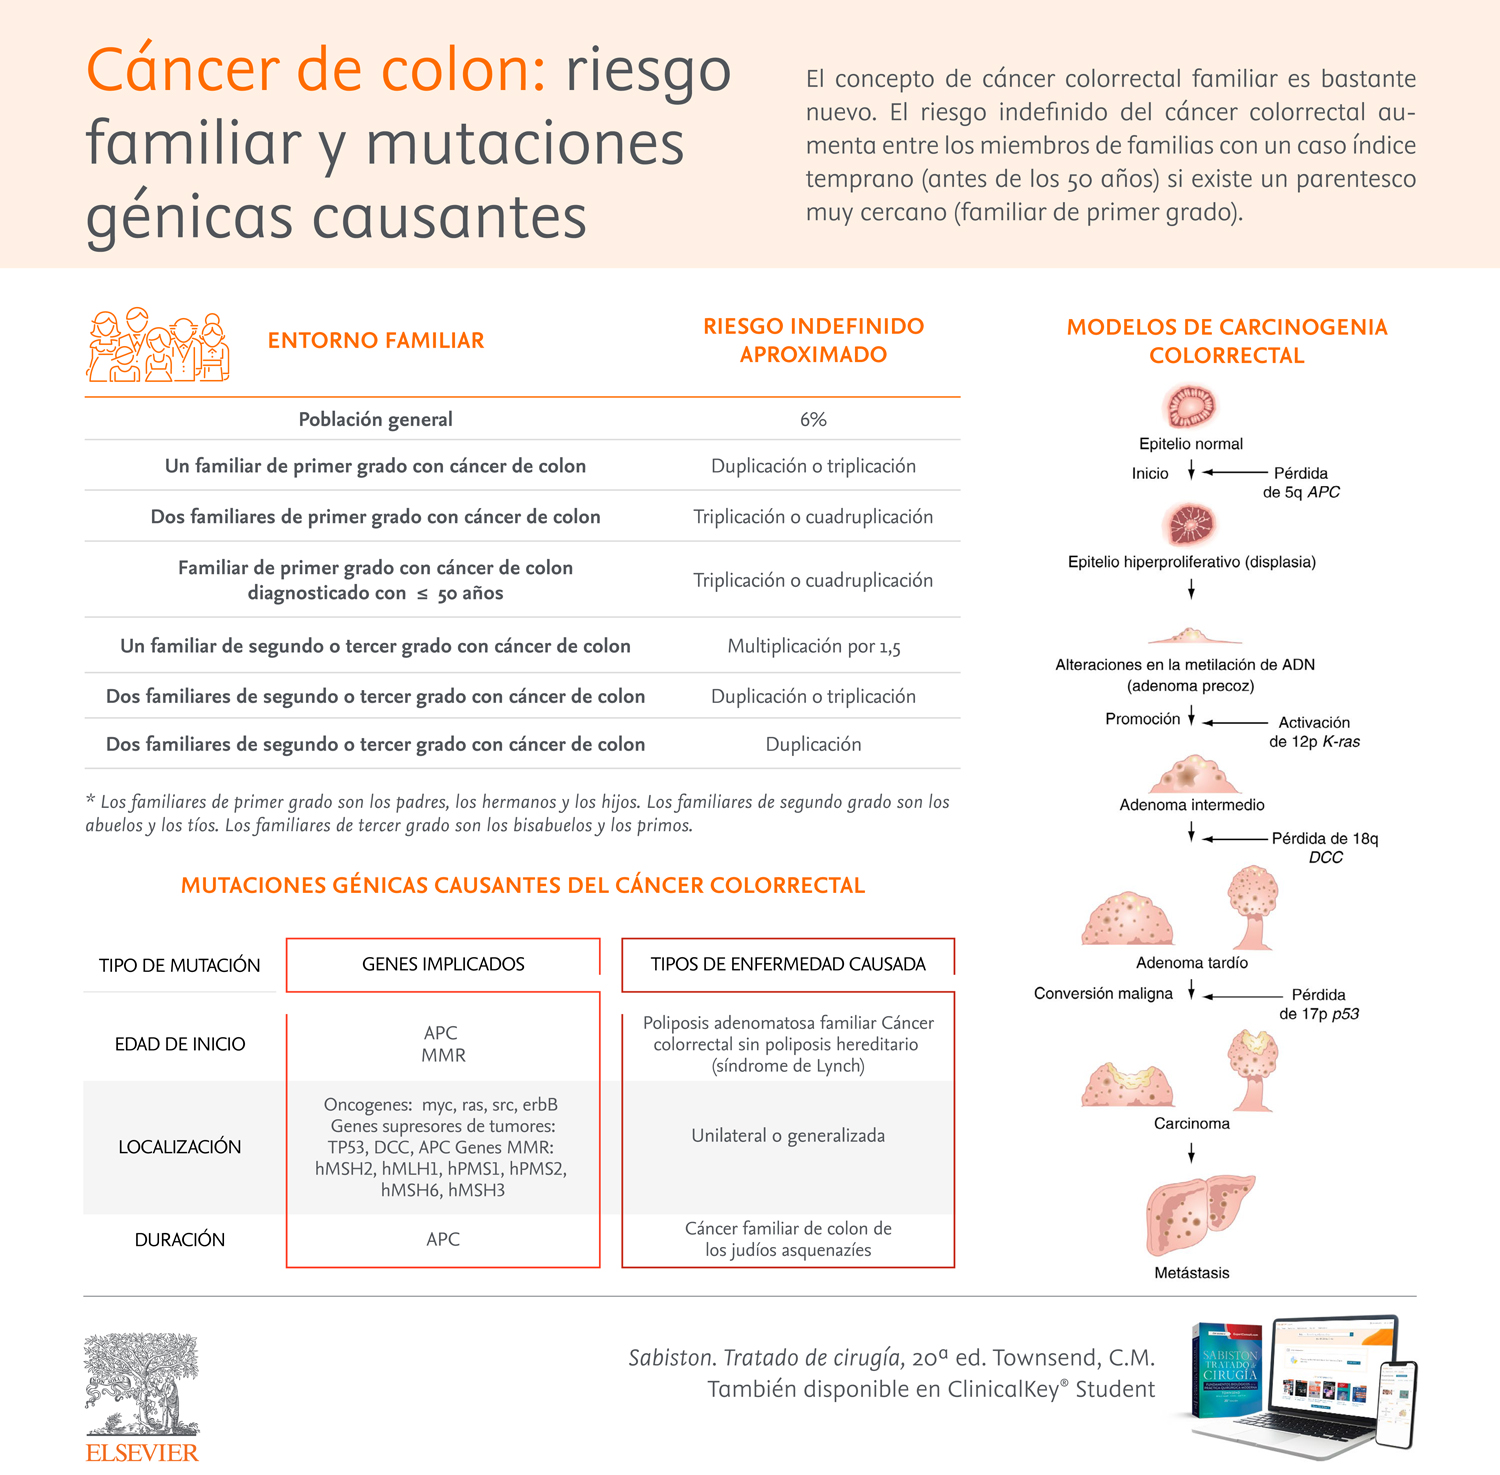 Infografia_Cancer-colon-riesgo-familiar-y.jpg